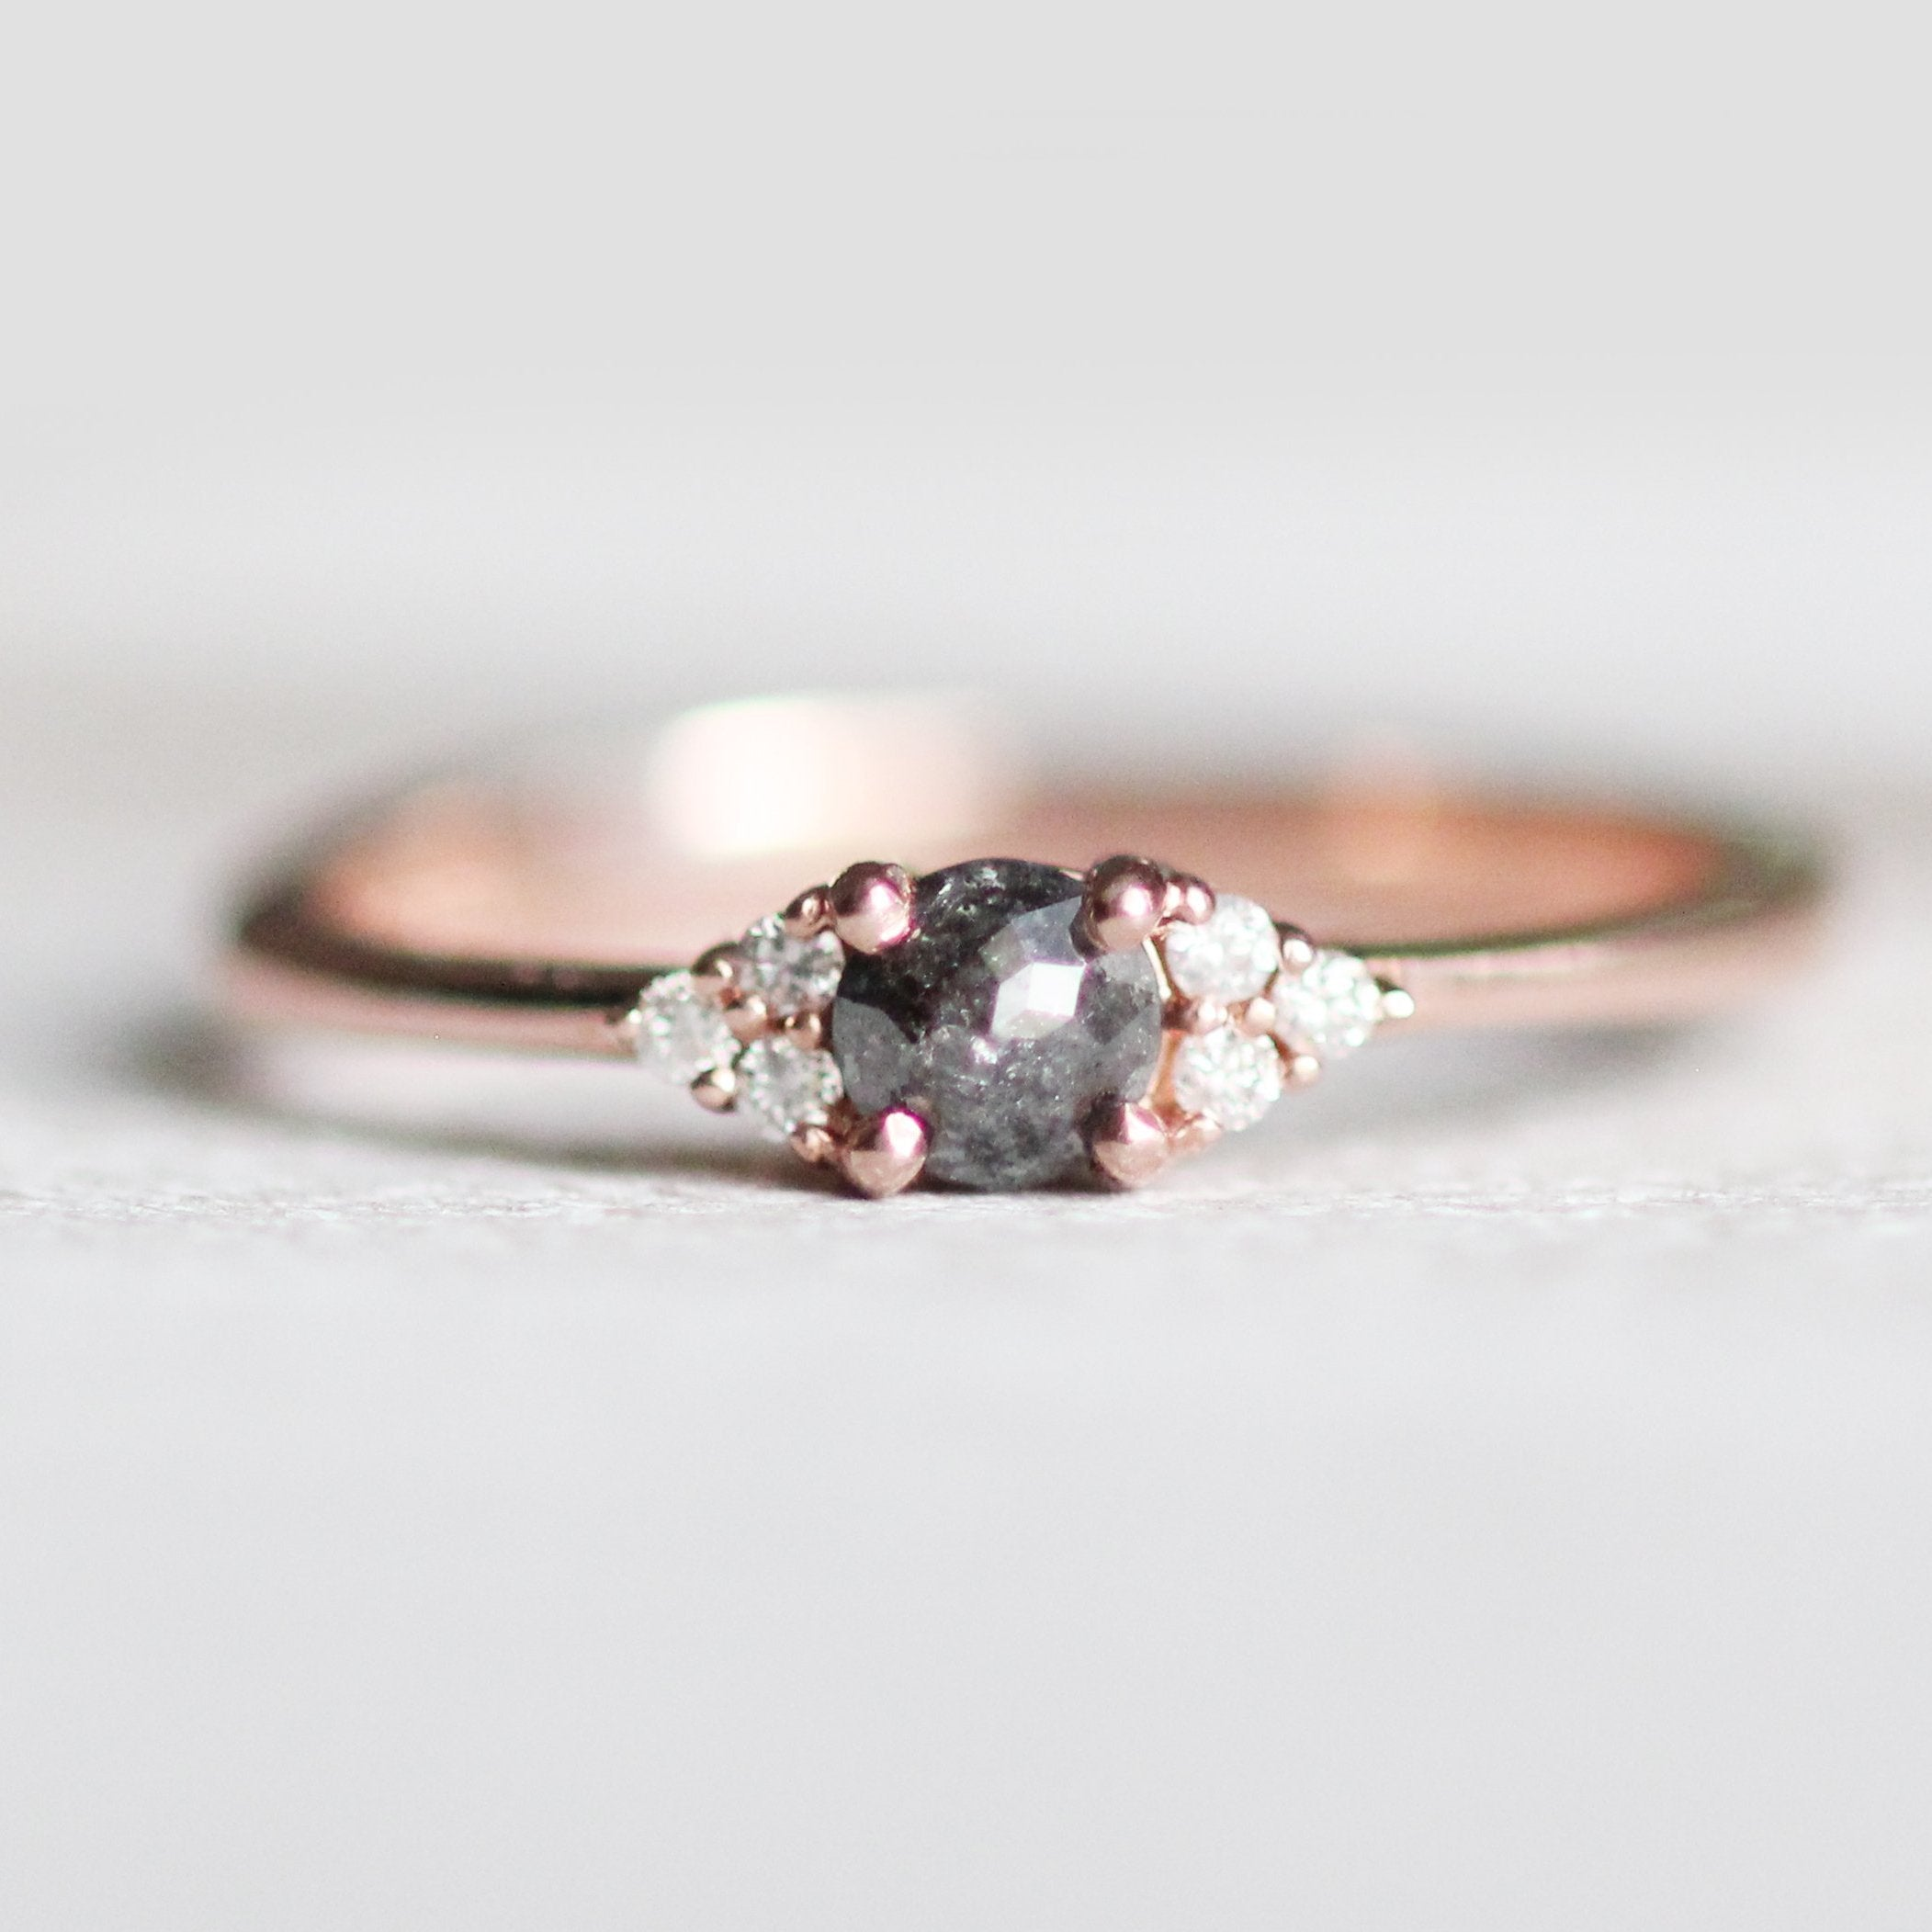 Imogene - Dark Rose Cut Diamond -  Choice of gold Imogene Diamond Band - Midwinter Co. Alternative Bridal Rings and Modern Fine Jewelry